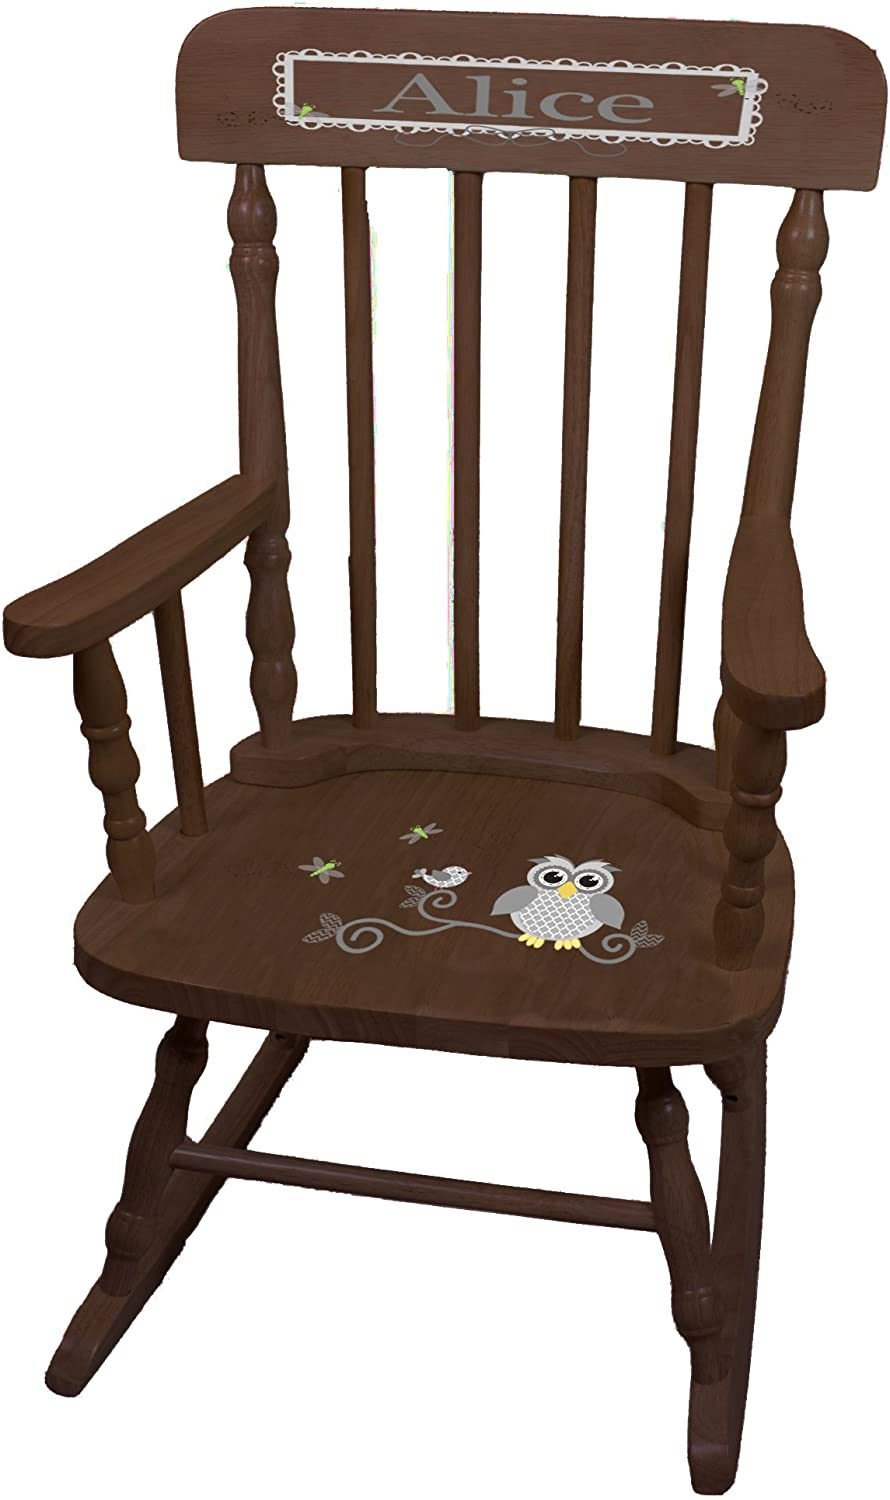 Personalized Gray Memphis Mall Owl Espresso Rocking Discount mail order Chair Childrens